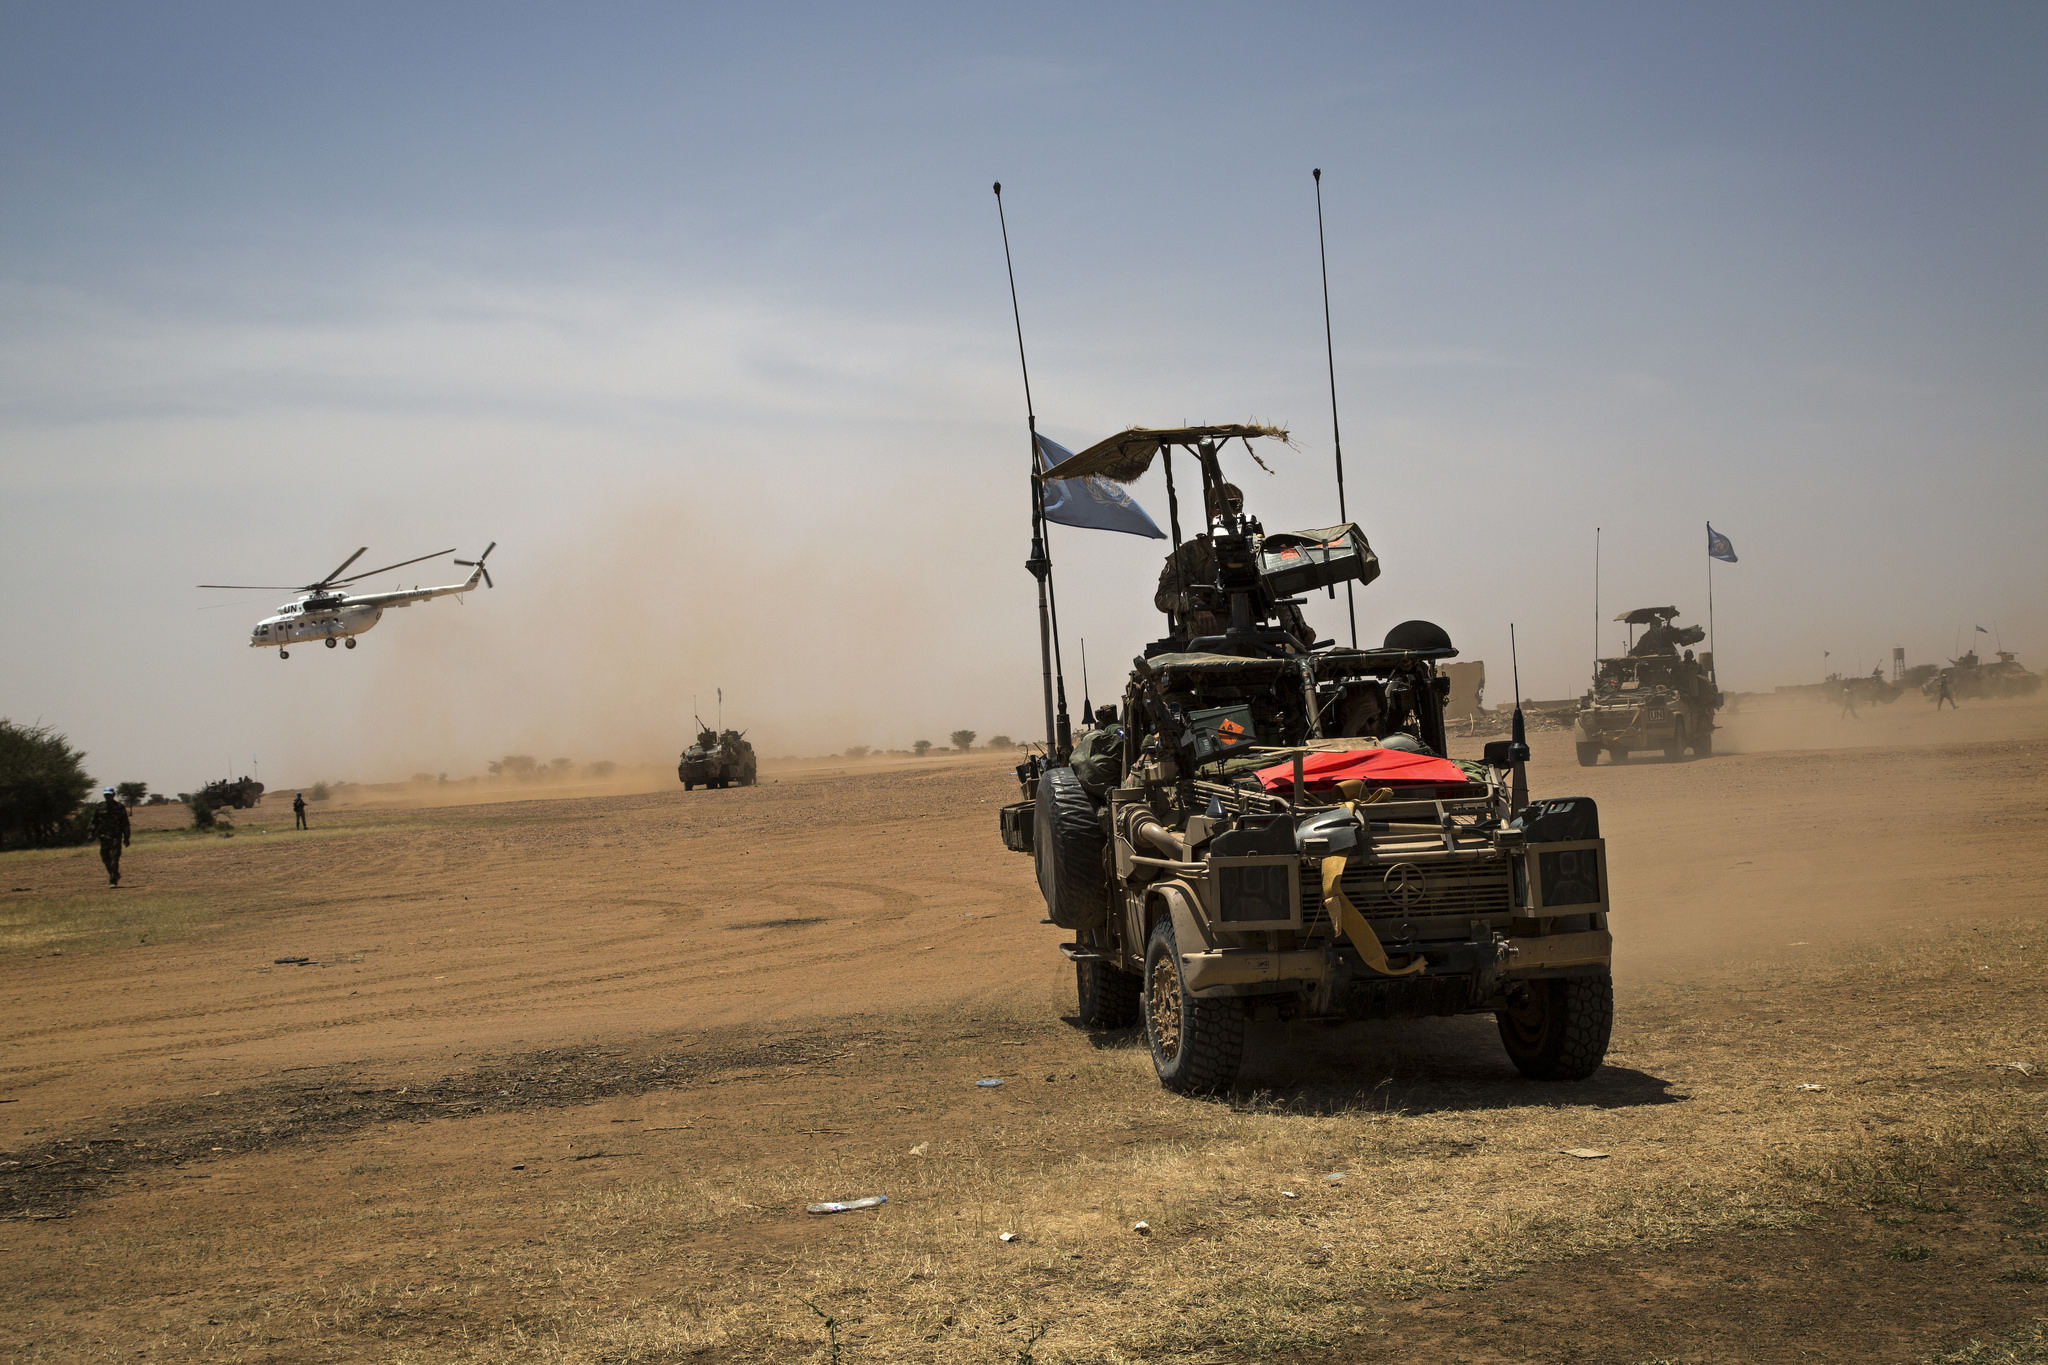 MINUSMA Force Commander Visits Anefis in Northern Mali. Photo: United Nations